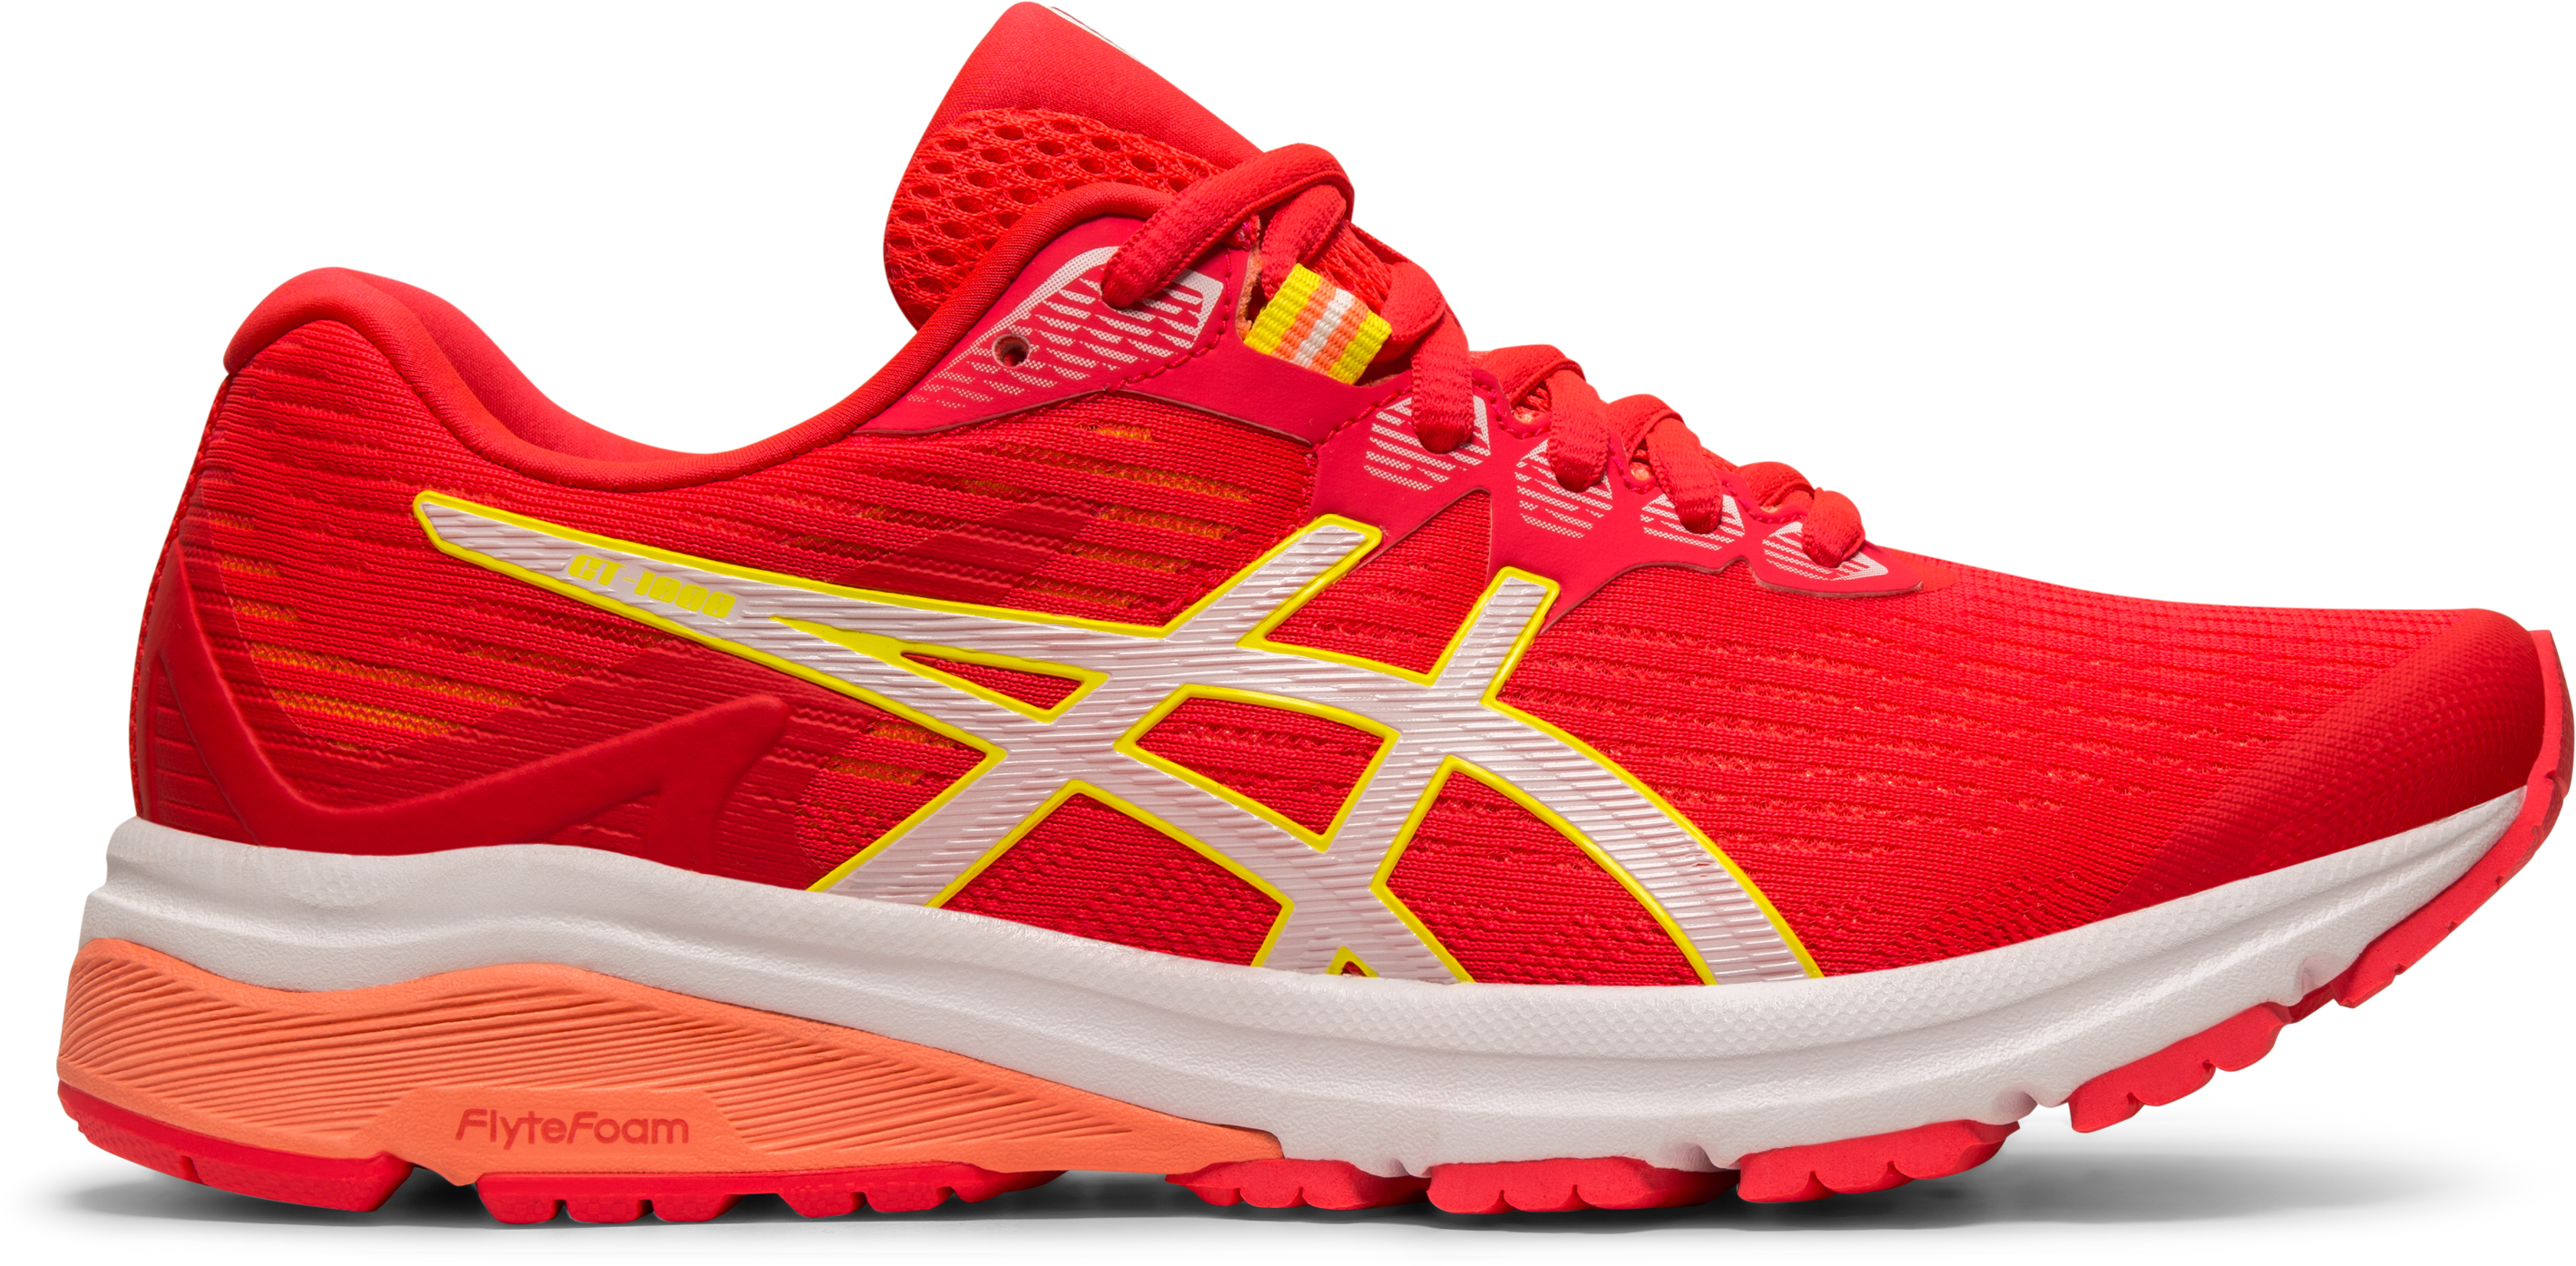 asics GT-1000 8 Women Running Shoe | Sko